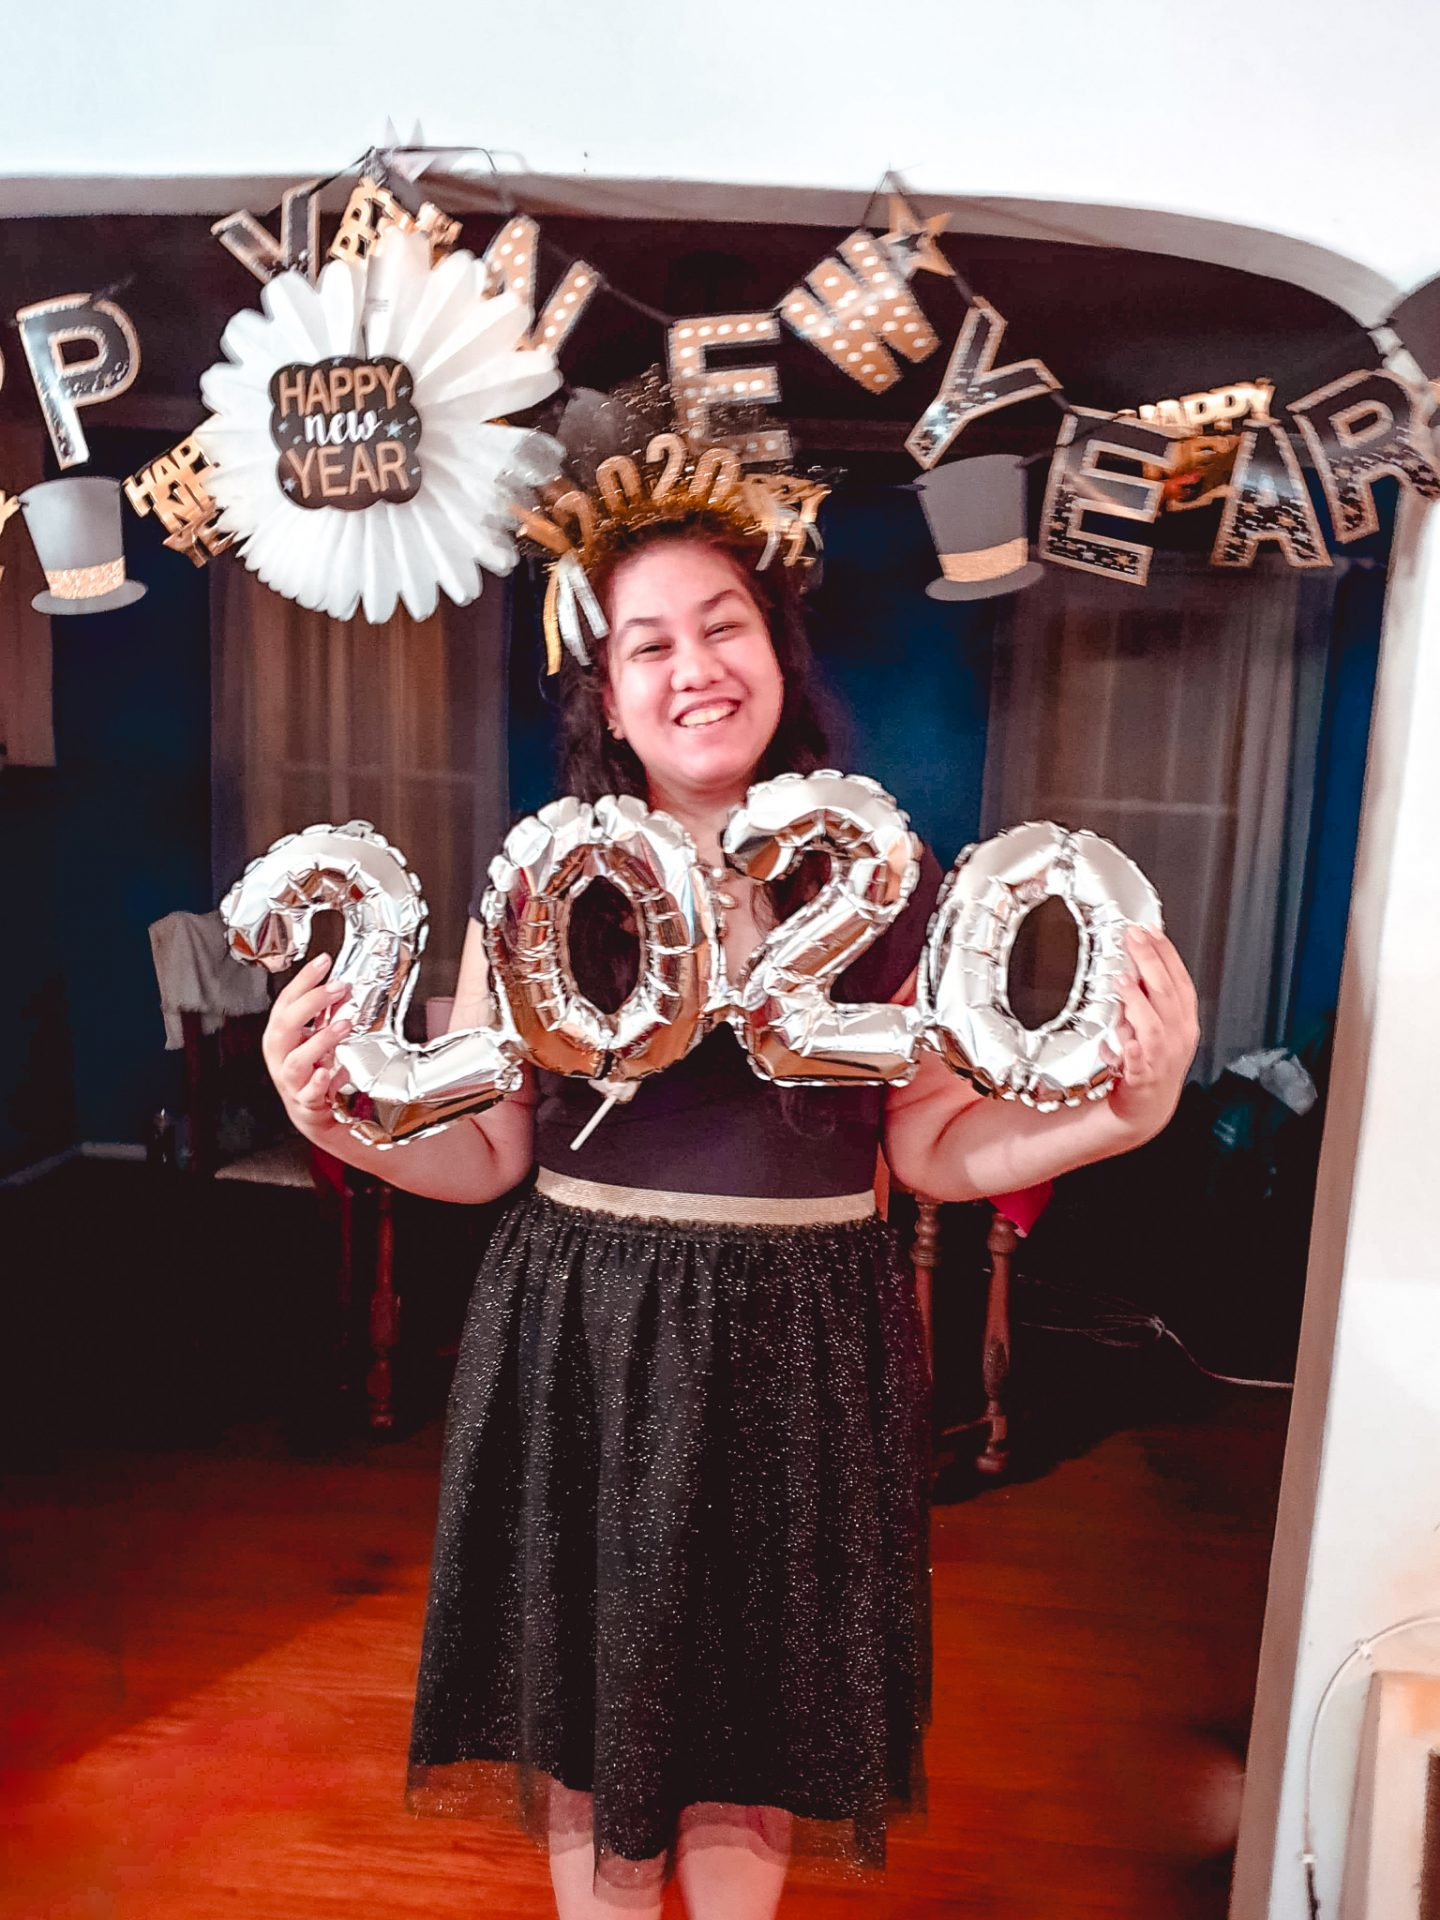 My 2020 New Year Goals & Intentions